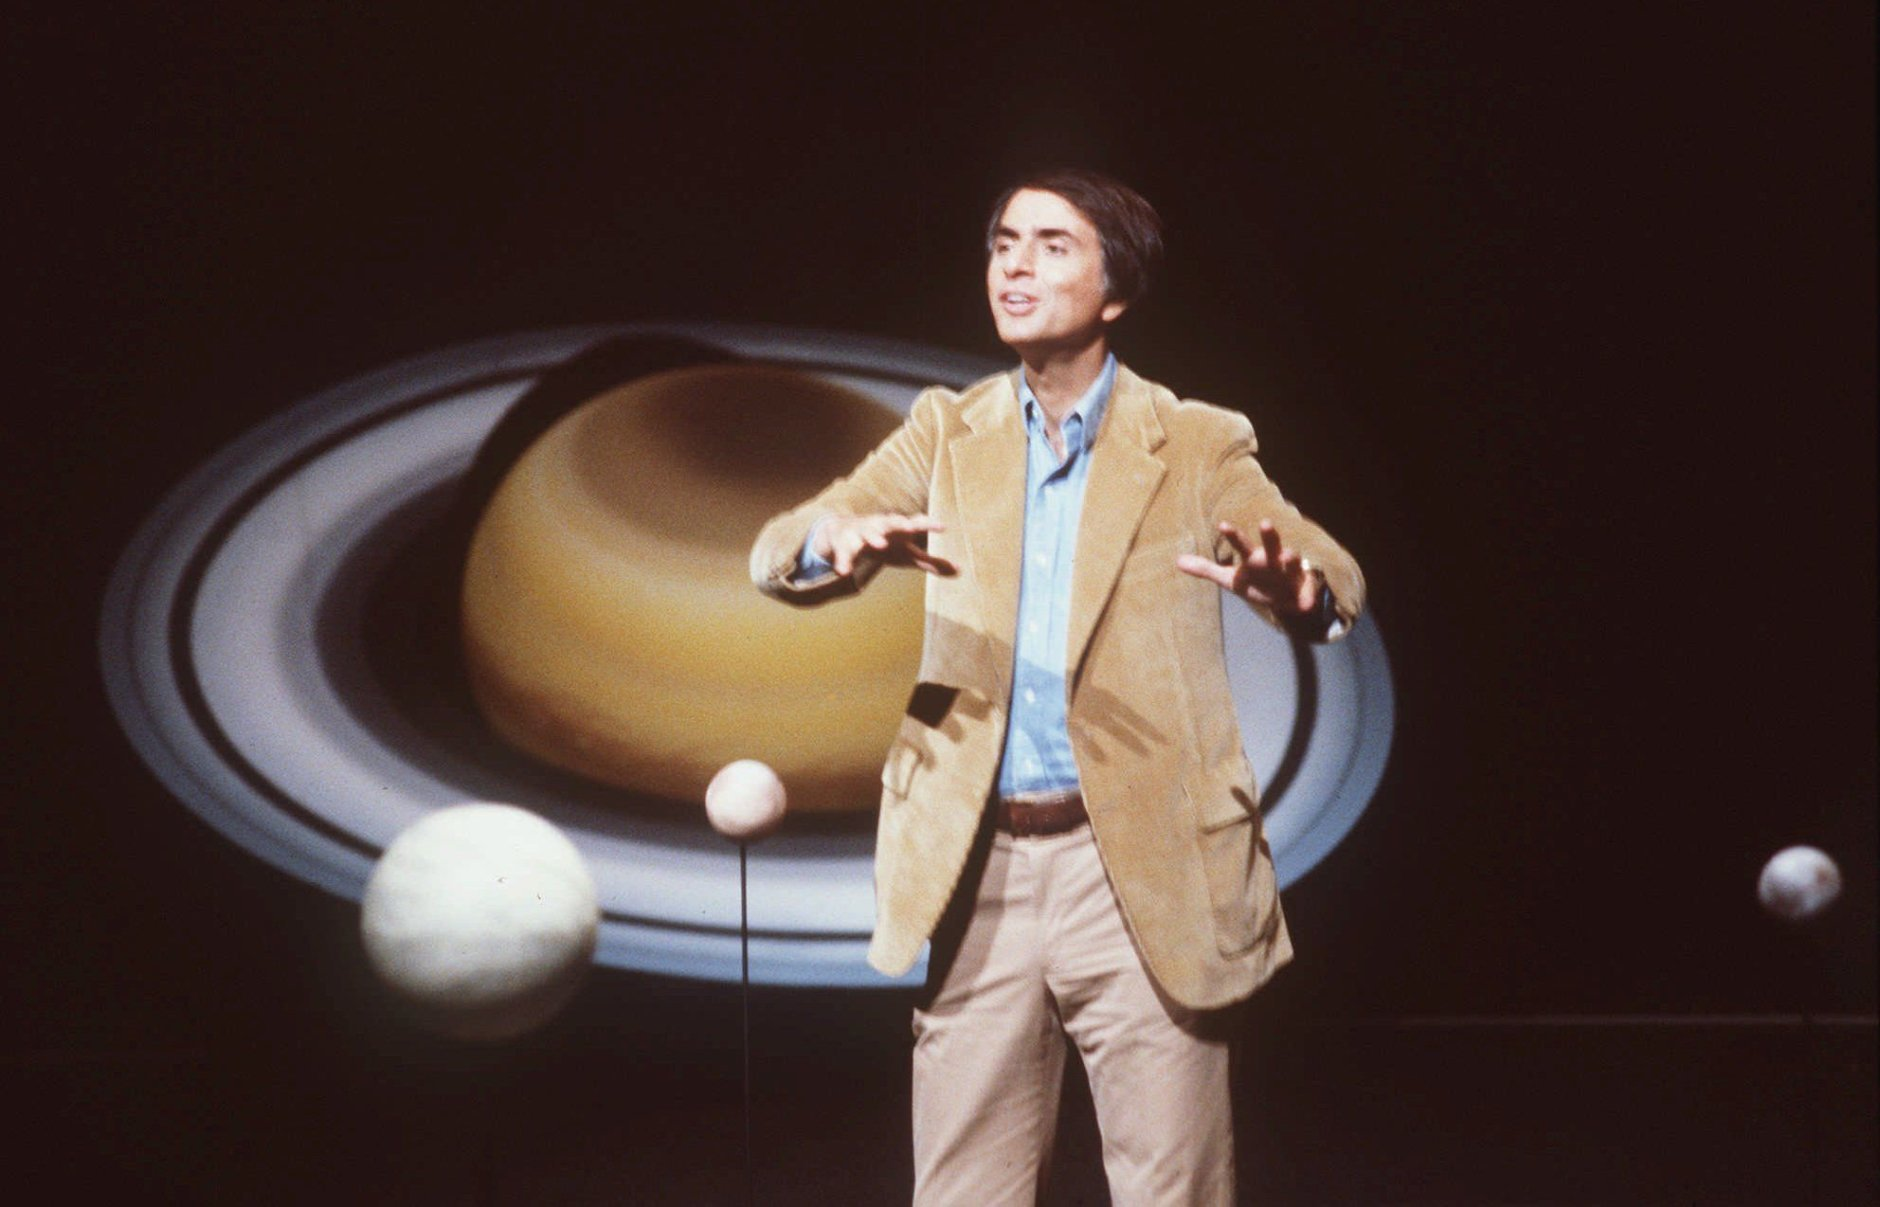 "In this 1981 file photo, astronomer Carl Sagan speaks during a lecture. On Saturday, May 9, 2015, Cornell University announced that its Institute for Pale Blue Dots is to be renamed the Carl Sagan Institute. Sagan was famous for extolling the grandeur of the universe in books and shows like ""Cosmos."" He died in 1996 at age 62. (AP Photo/Castaneda, File)"